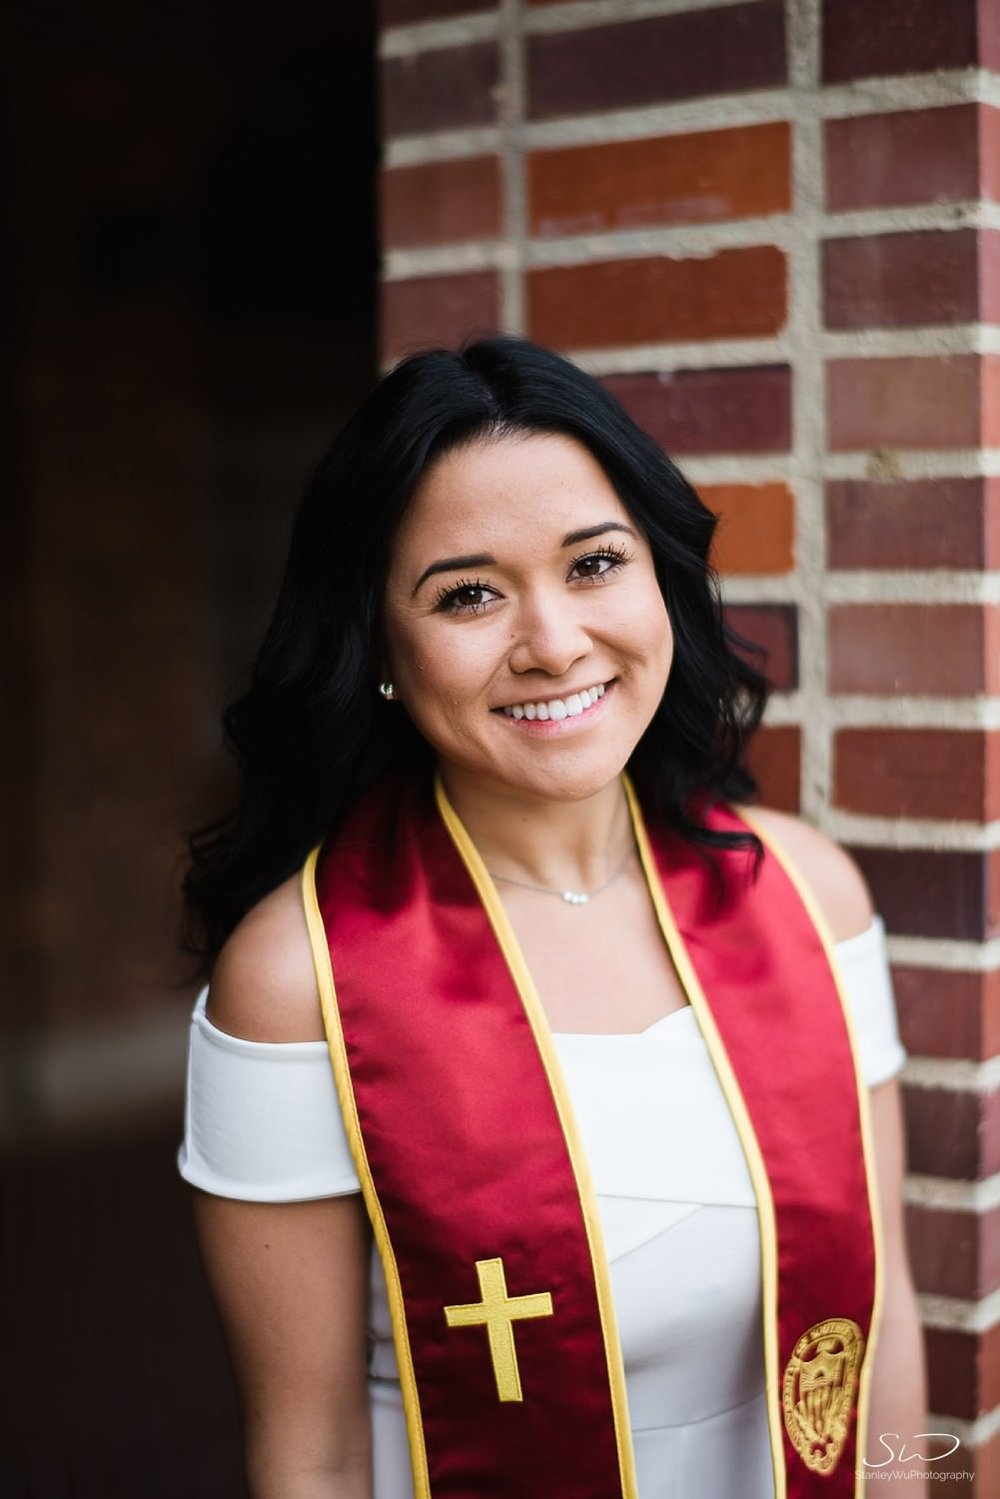 los-angeles-usc-graduation-senior-portraits_0009.jpg